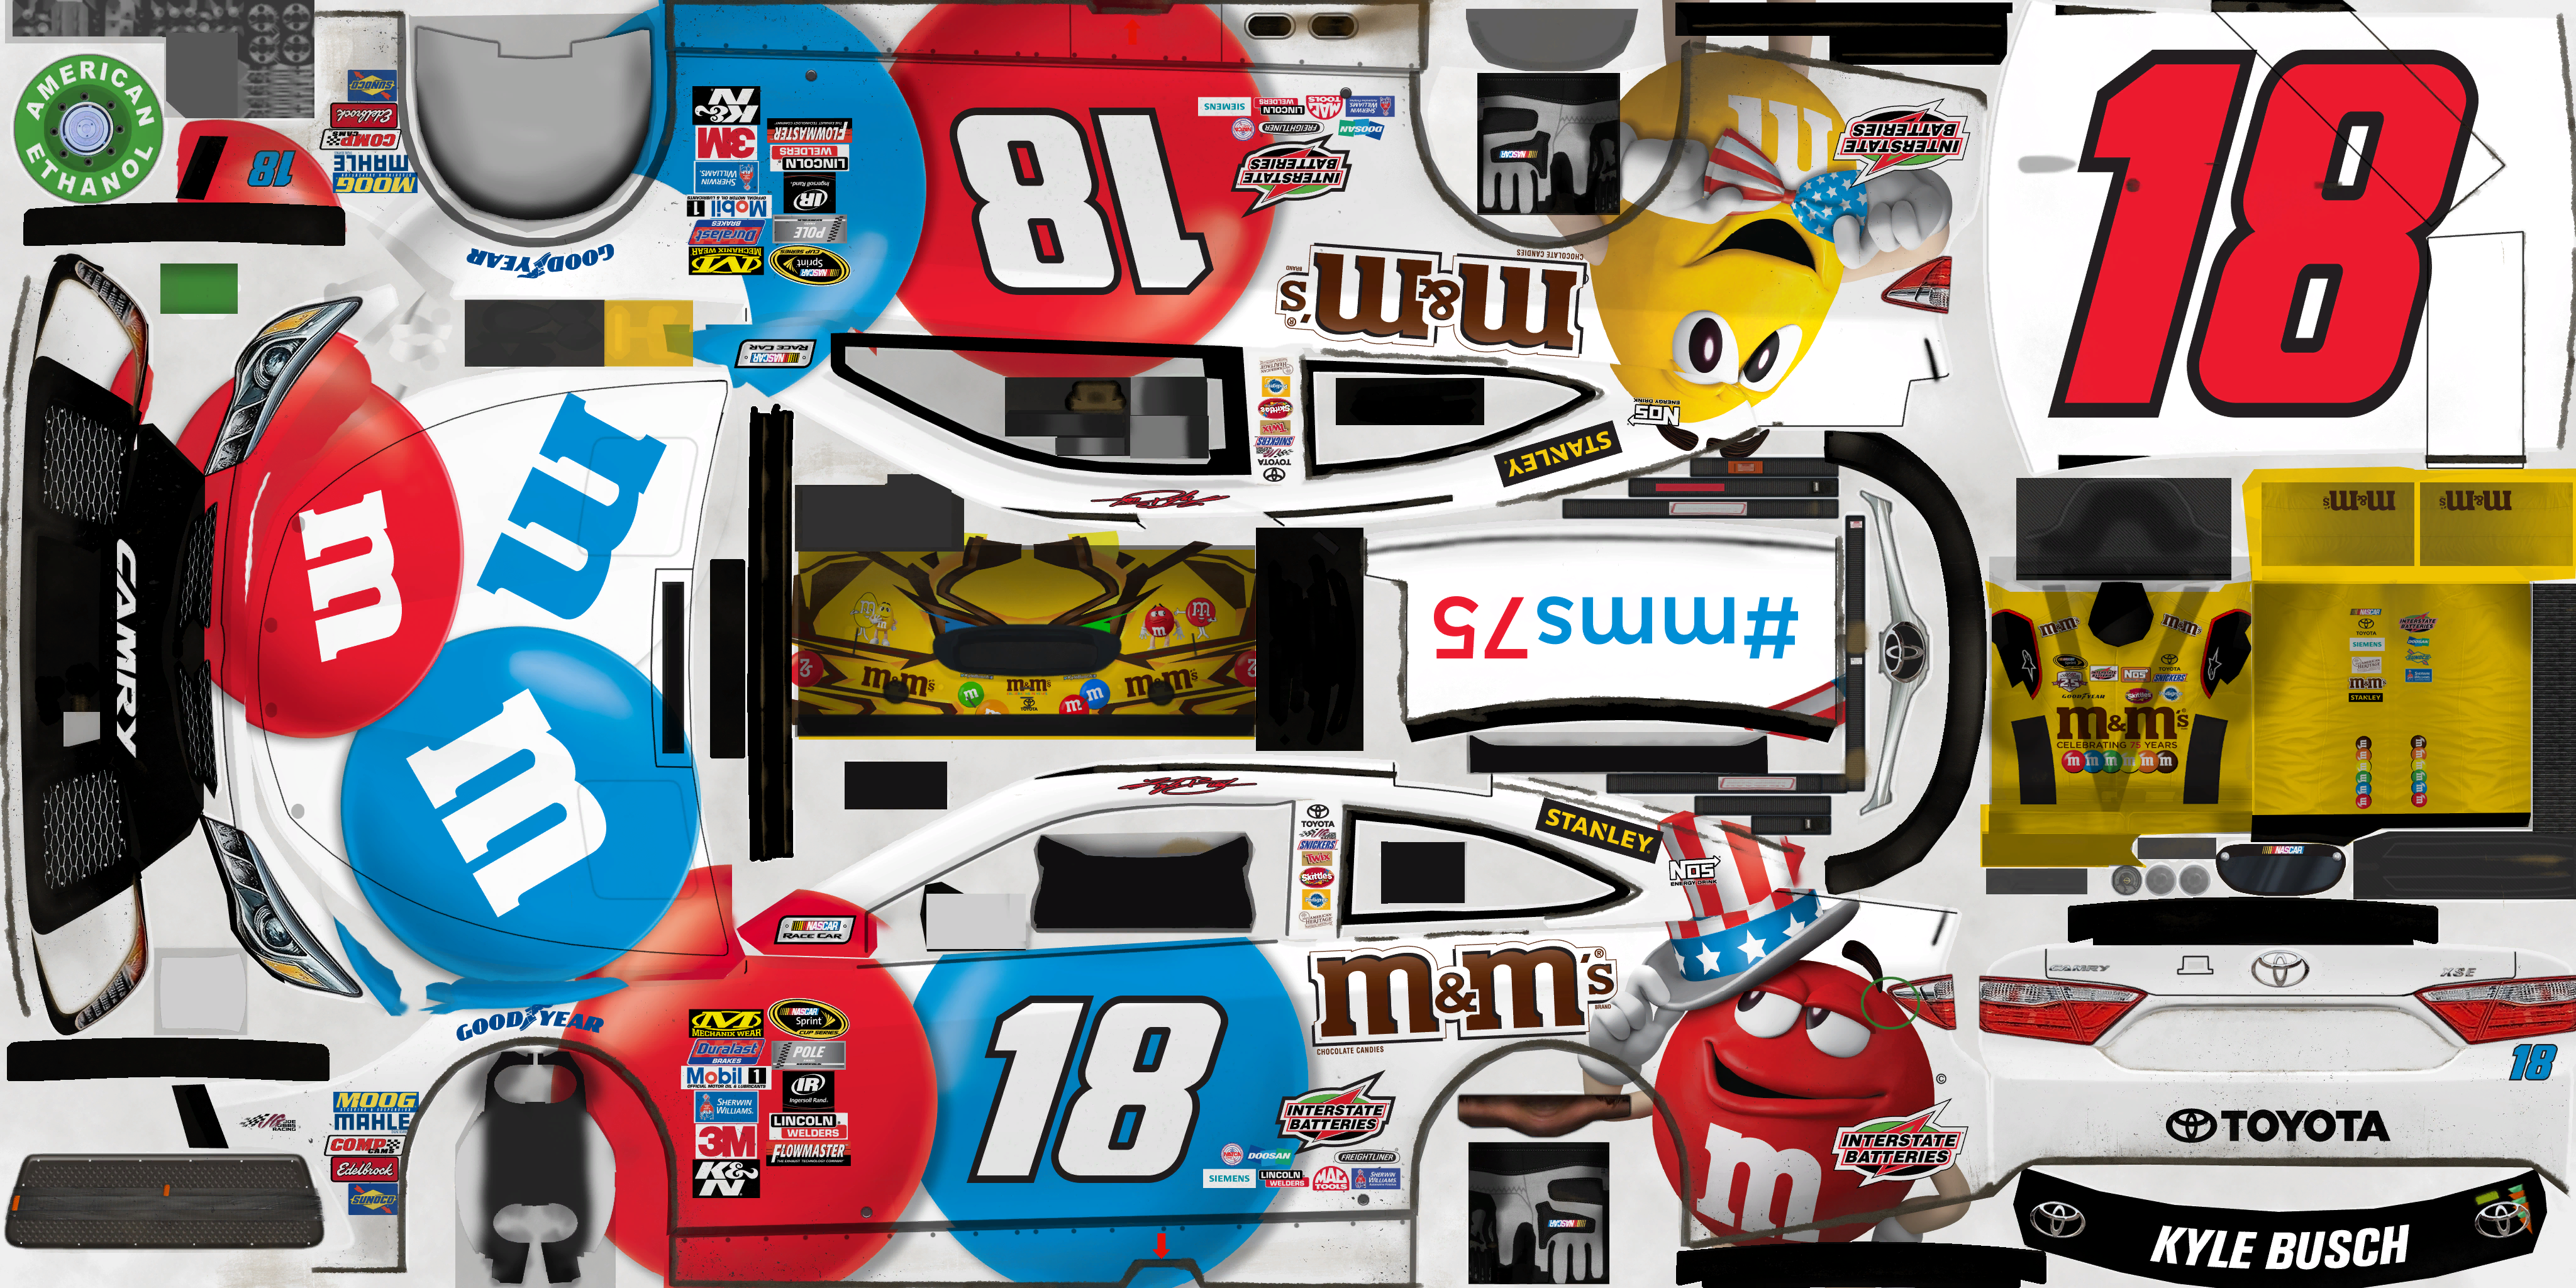 #18 Kyle Busch (M&M'S Red White and Blue)